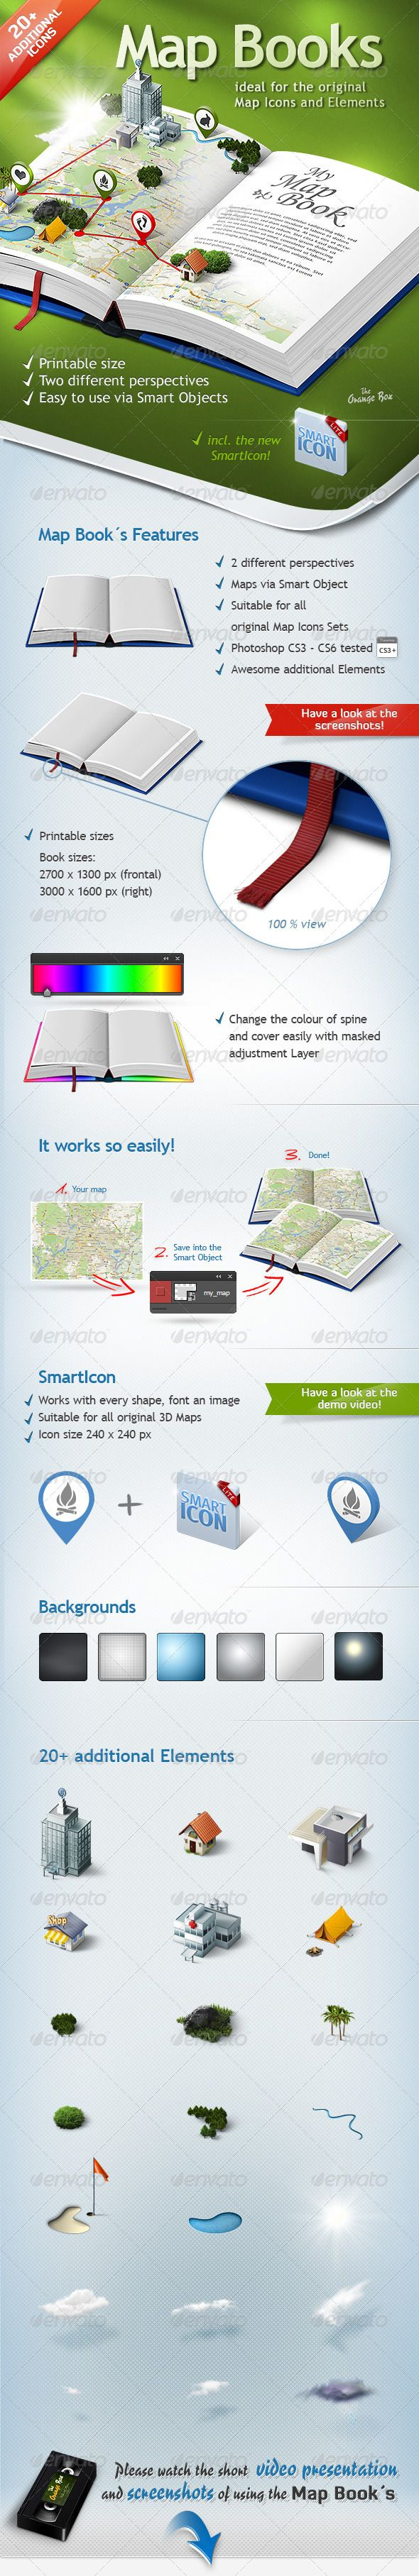 The punto is a complementary addition to any desktop it consists of a - Map Books The Stage For Your 3d Maps And Icons